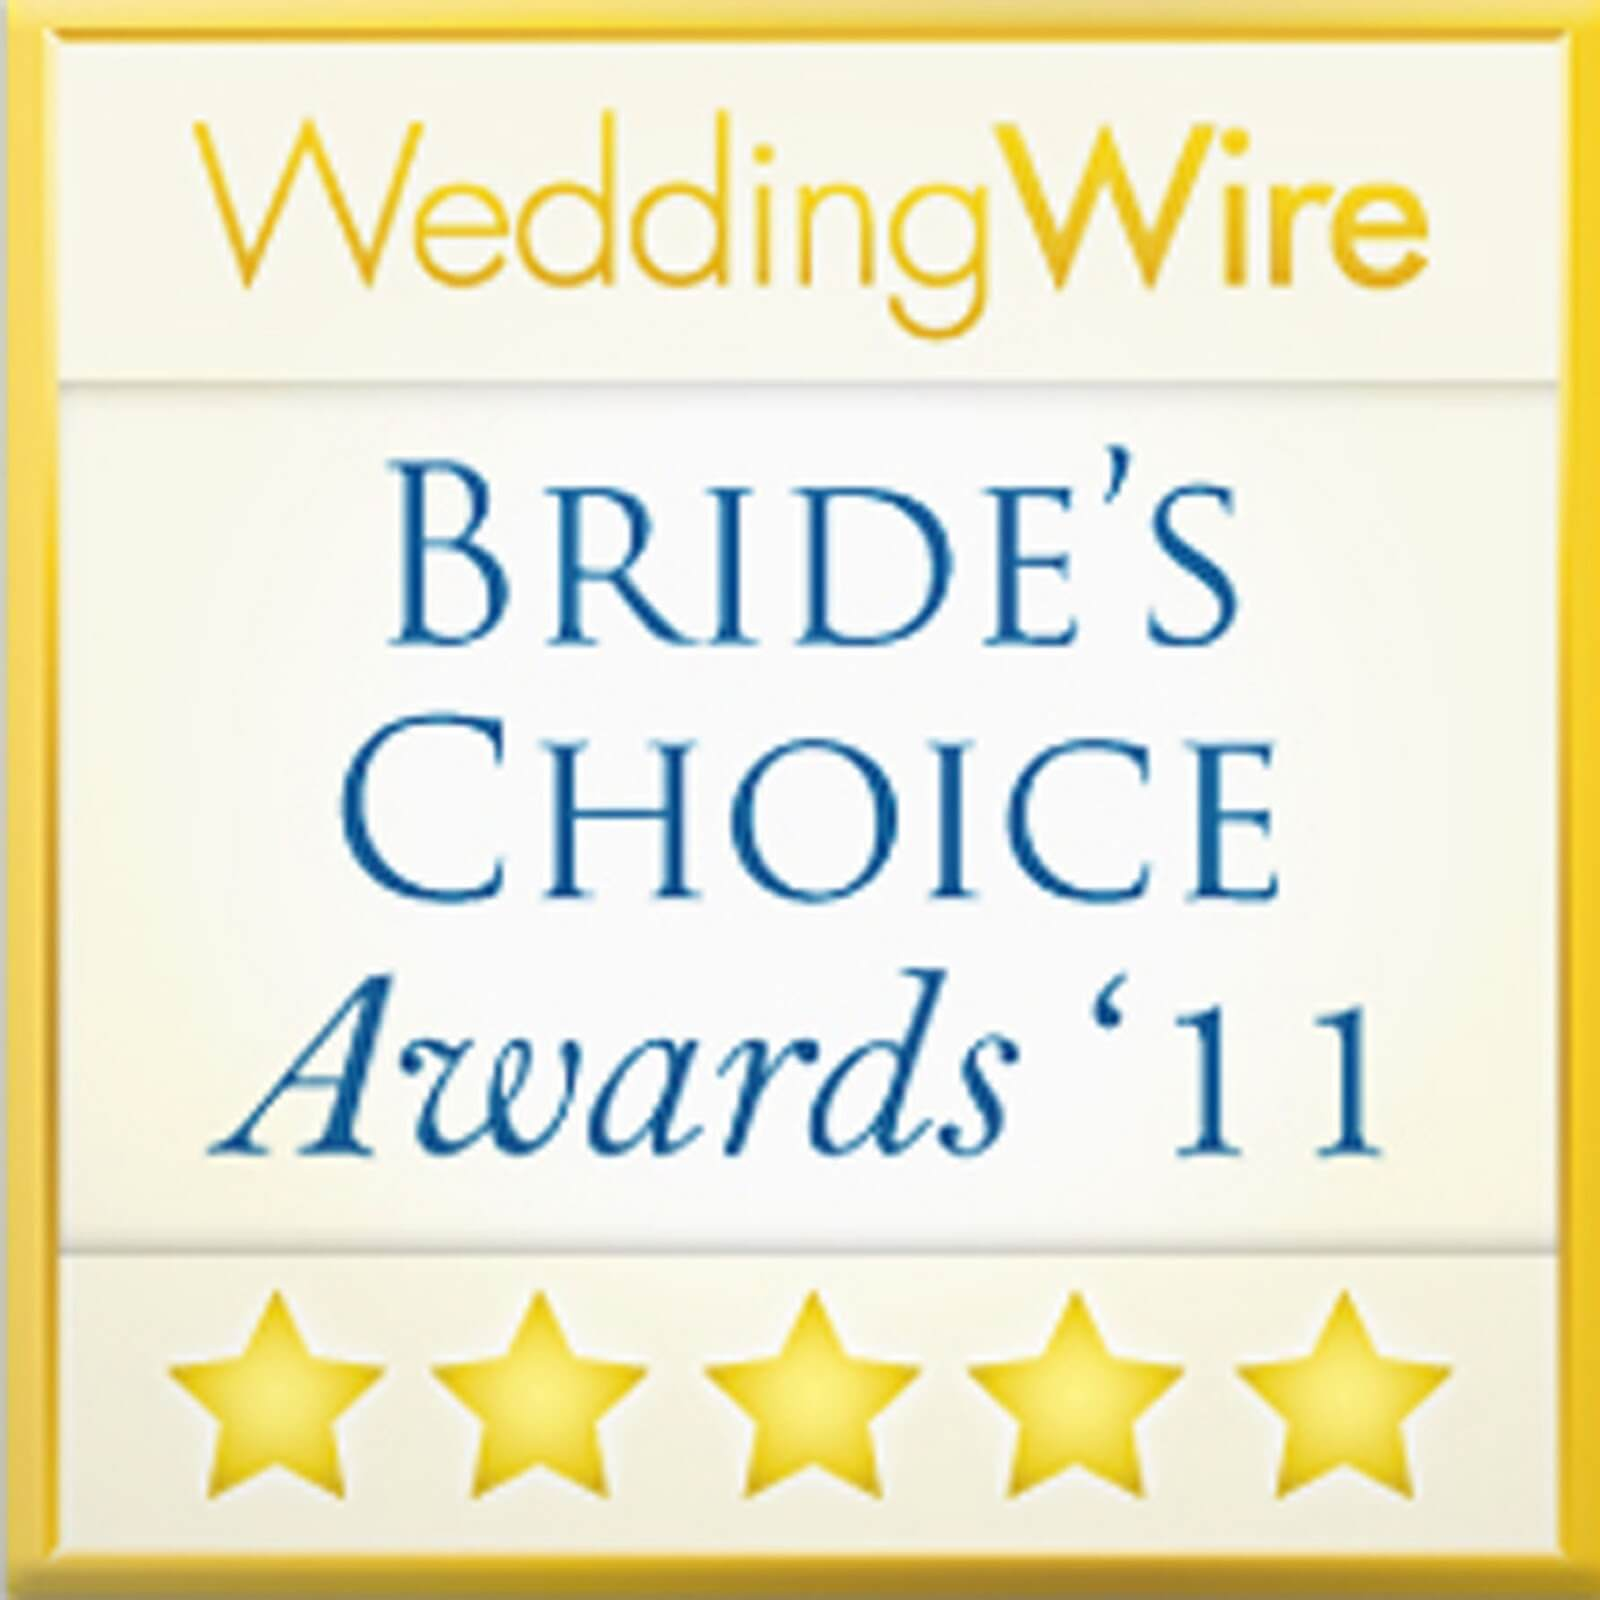 e Bride's Choice Award 2011